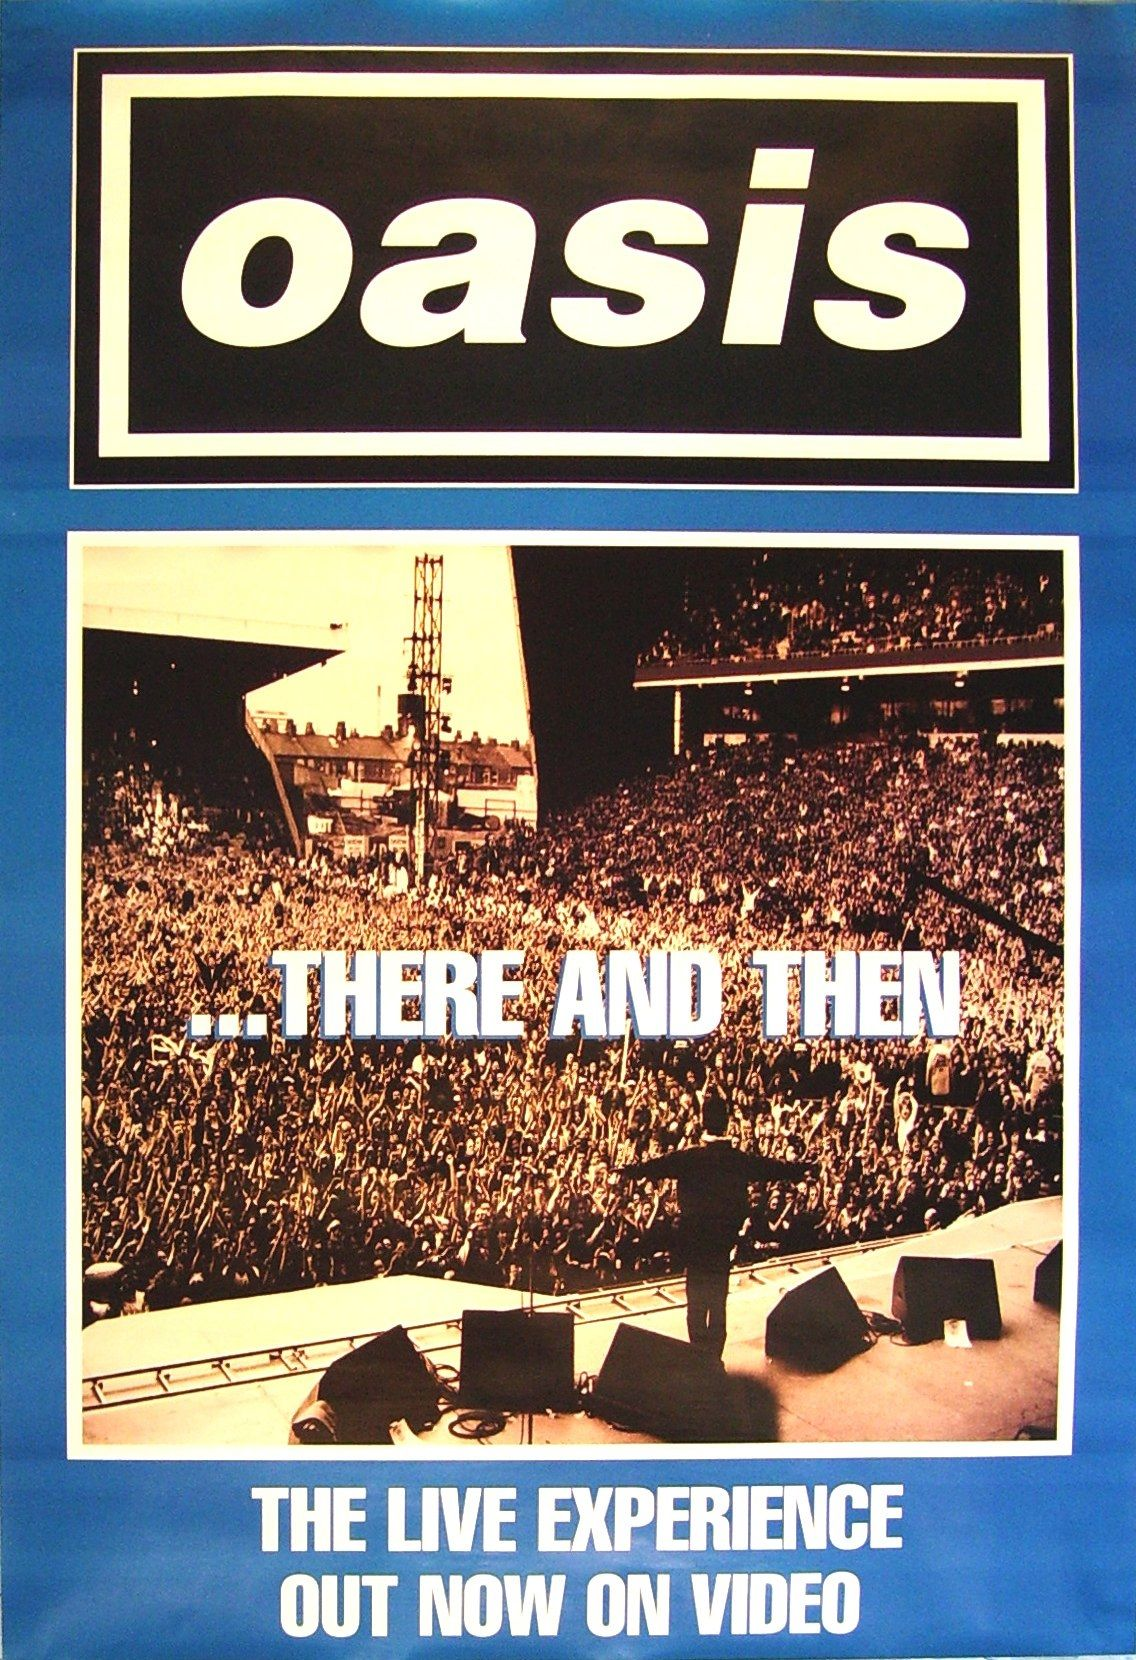 Oasis 9 English Rock Band Music Poster Legends Star Gallagher Colage Picture